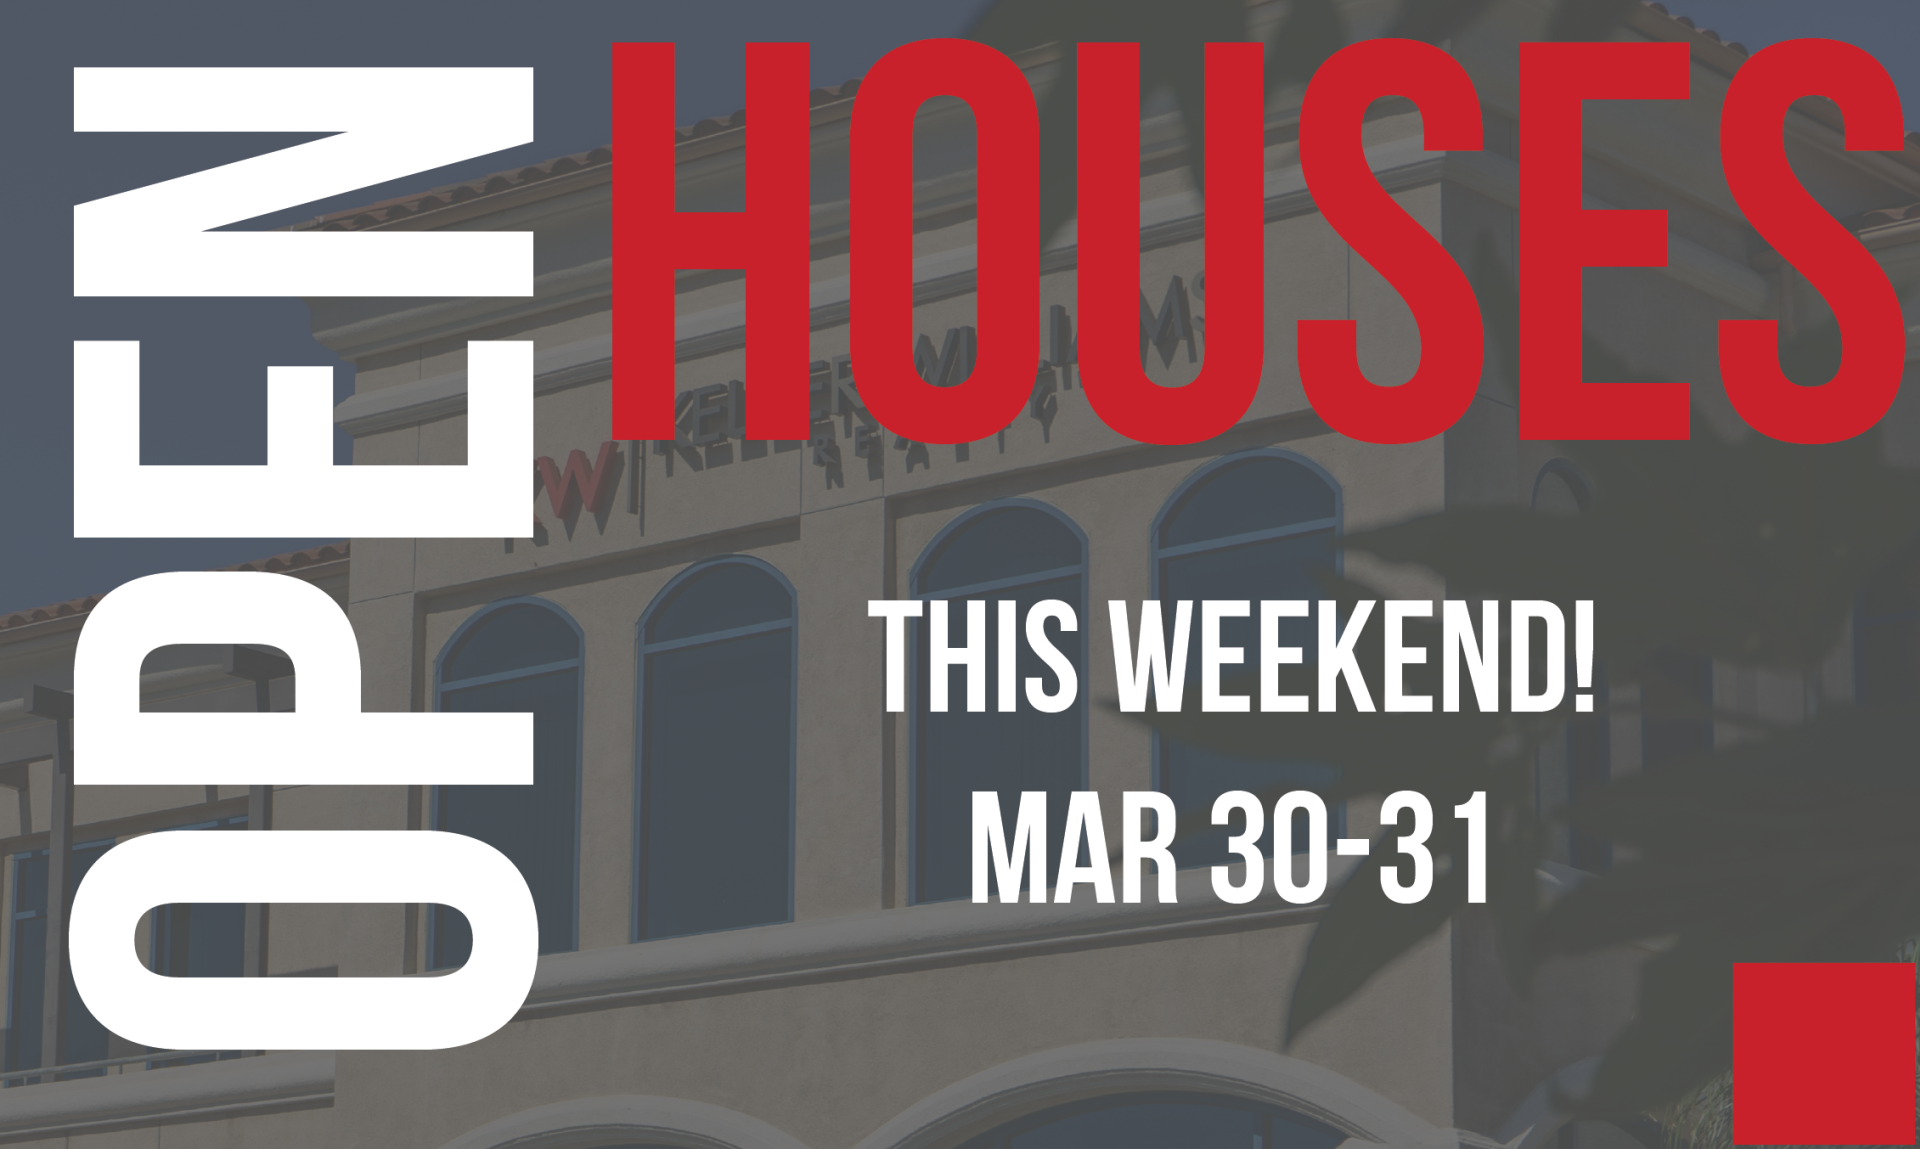 Open Houses This Weekend! Mar 30-31